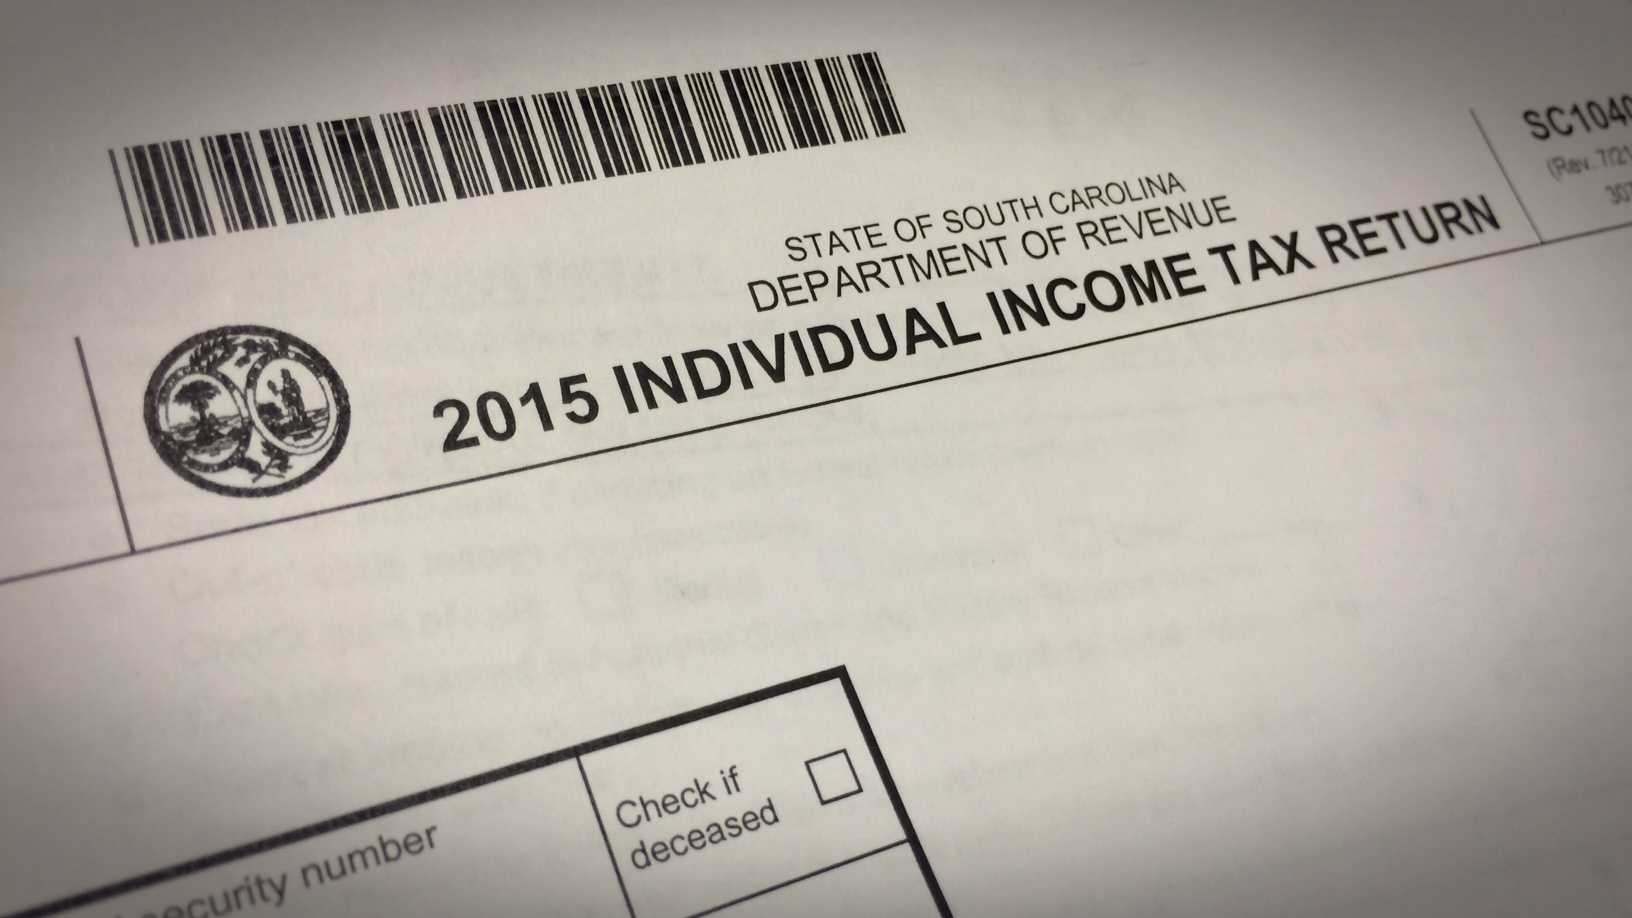 SC tax refunds being issued after delay to combat fraud